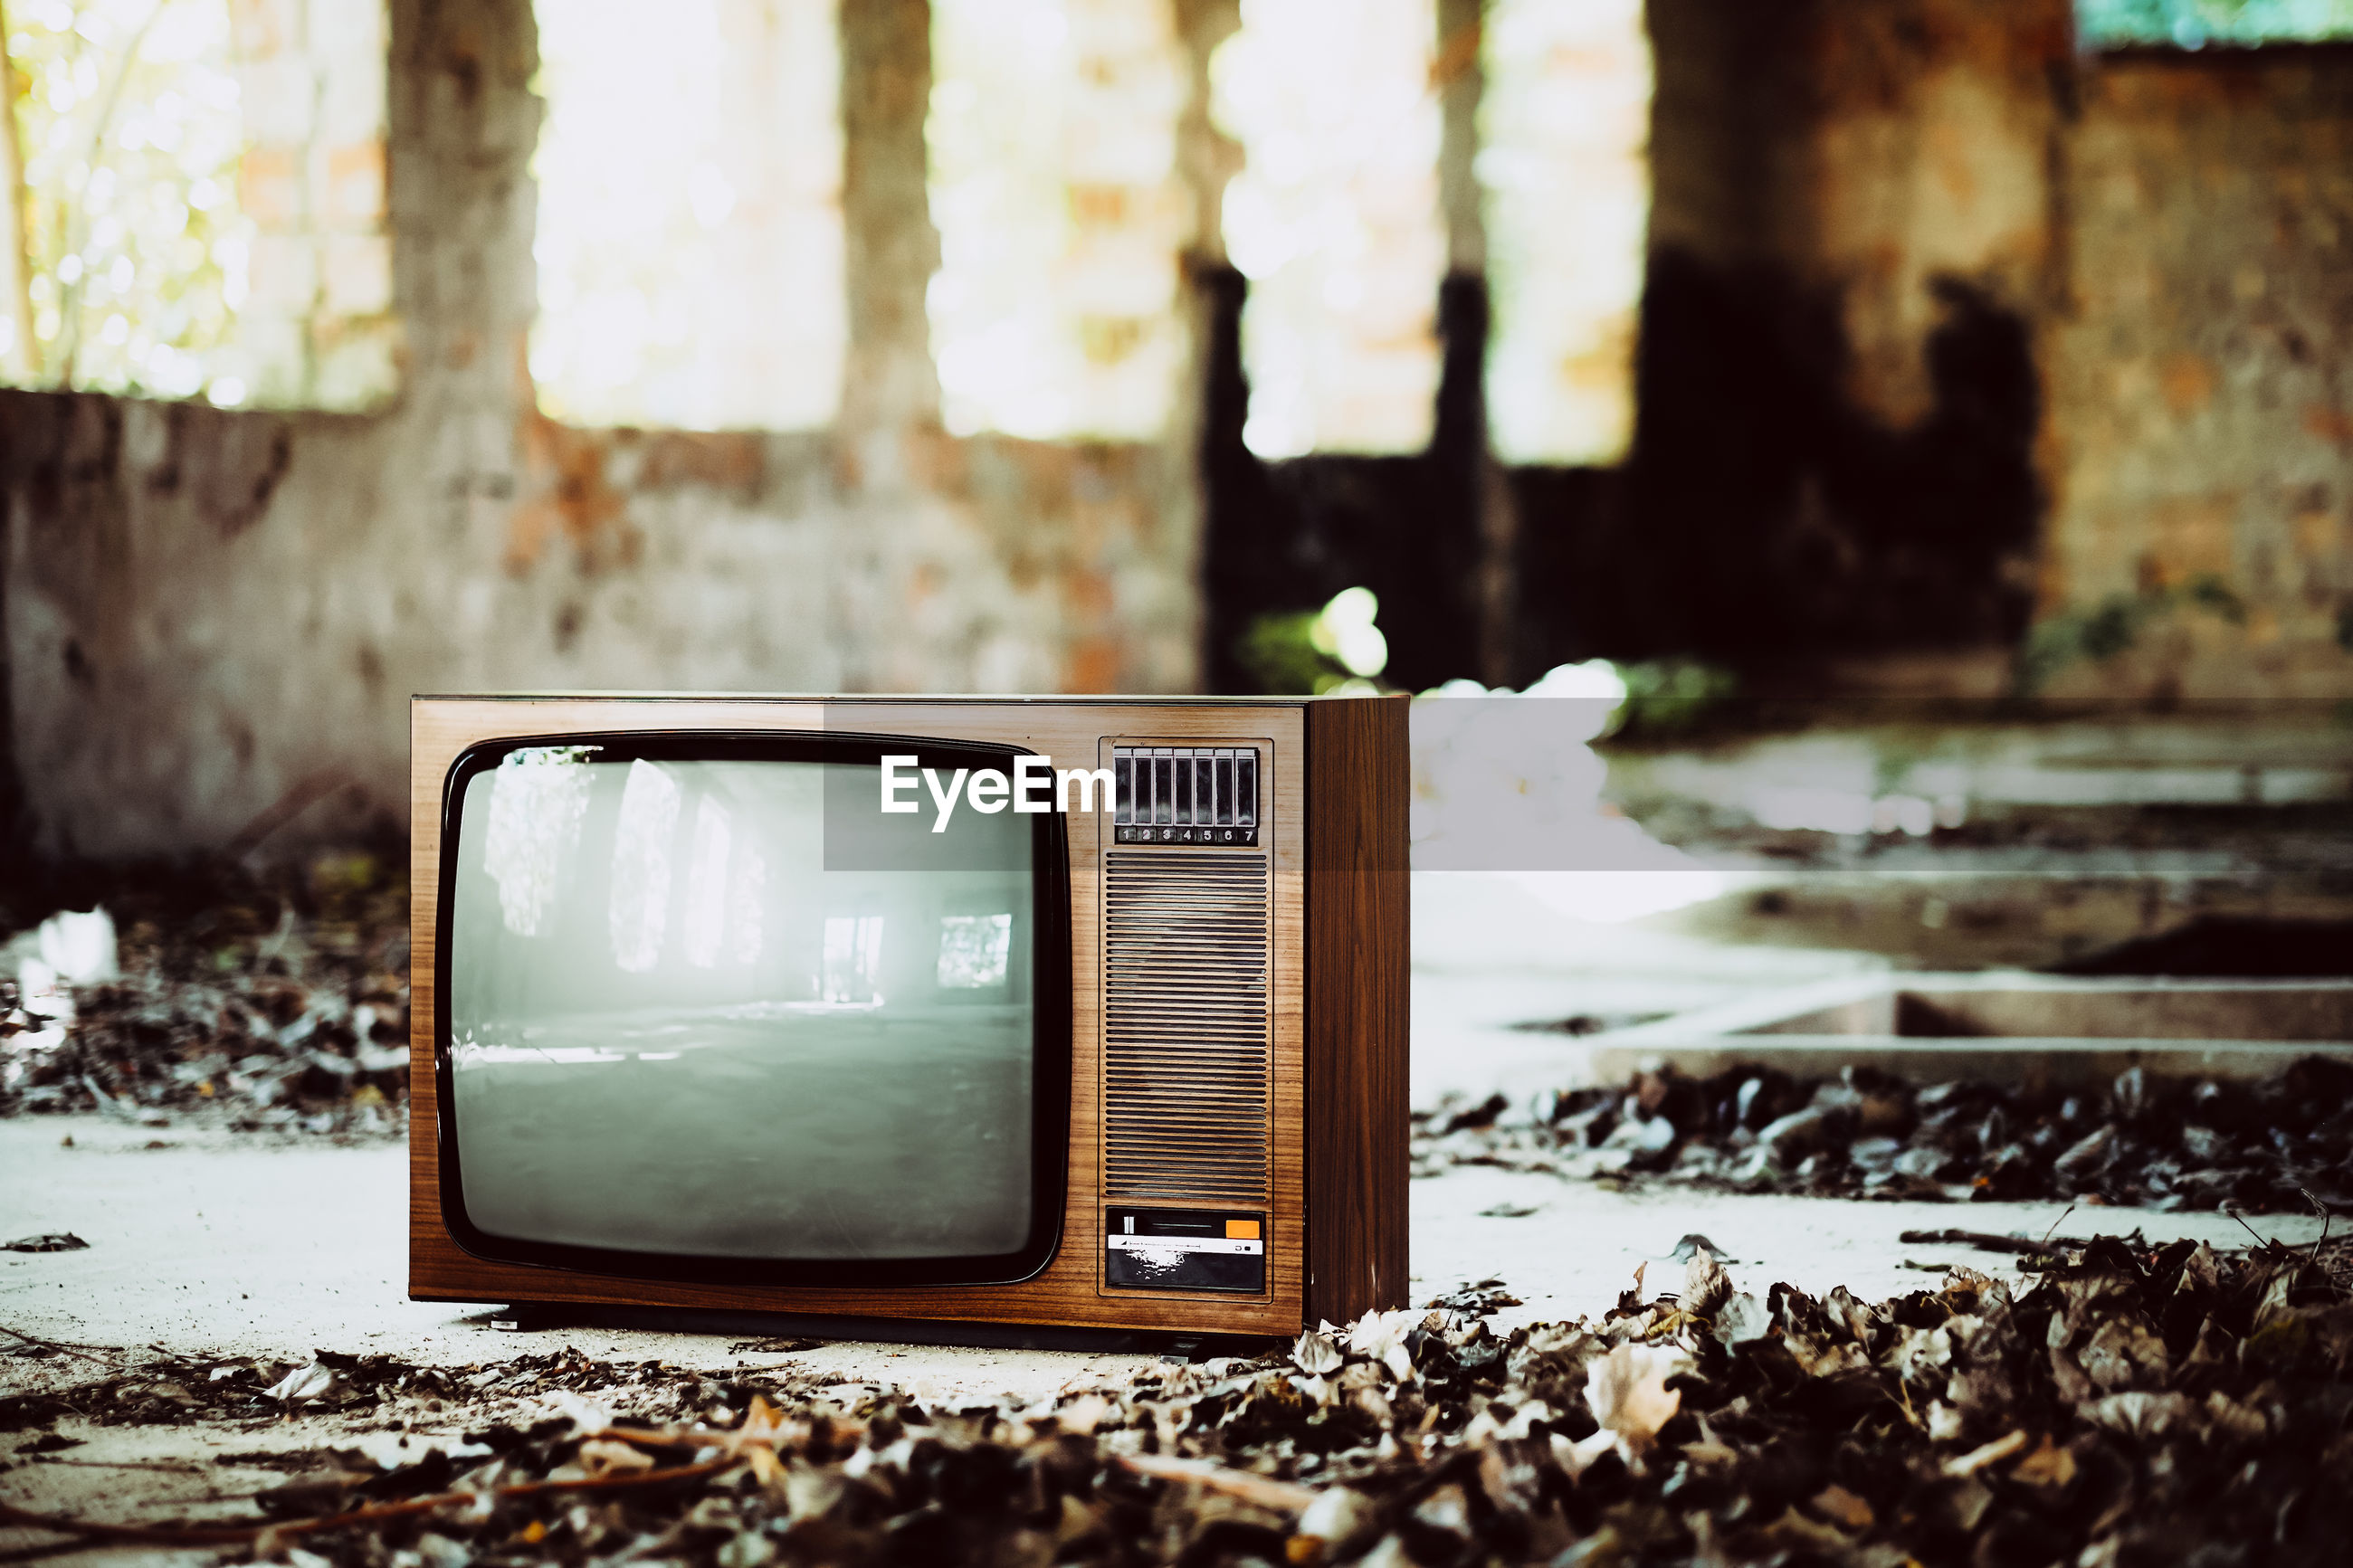 Old television set in abandoned house